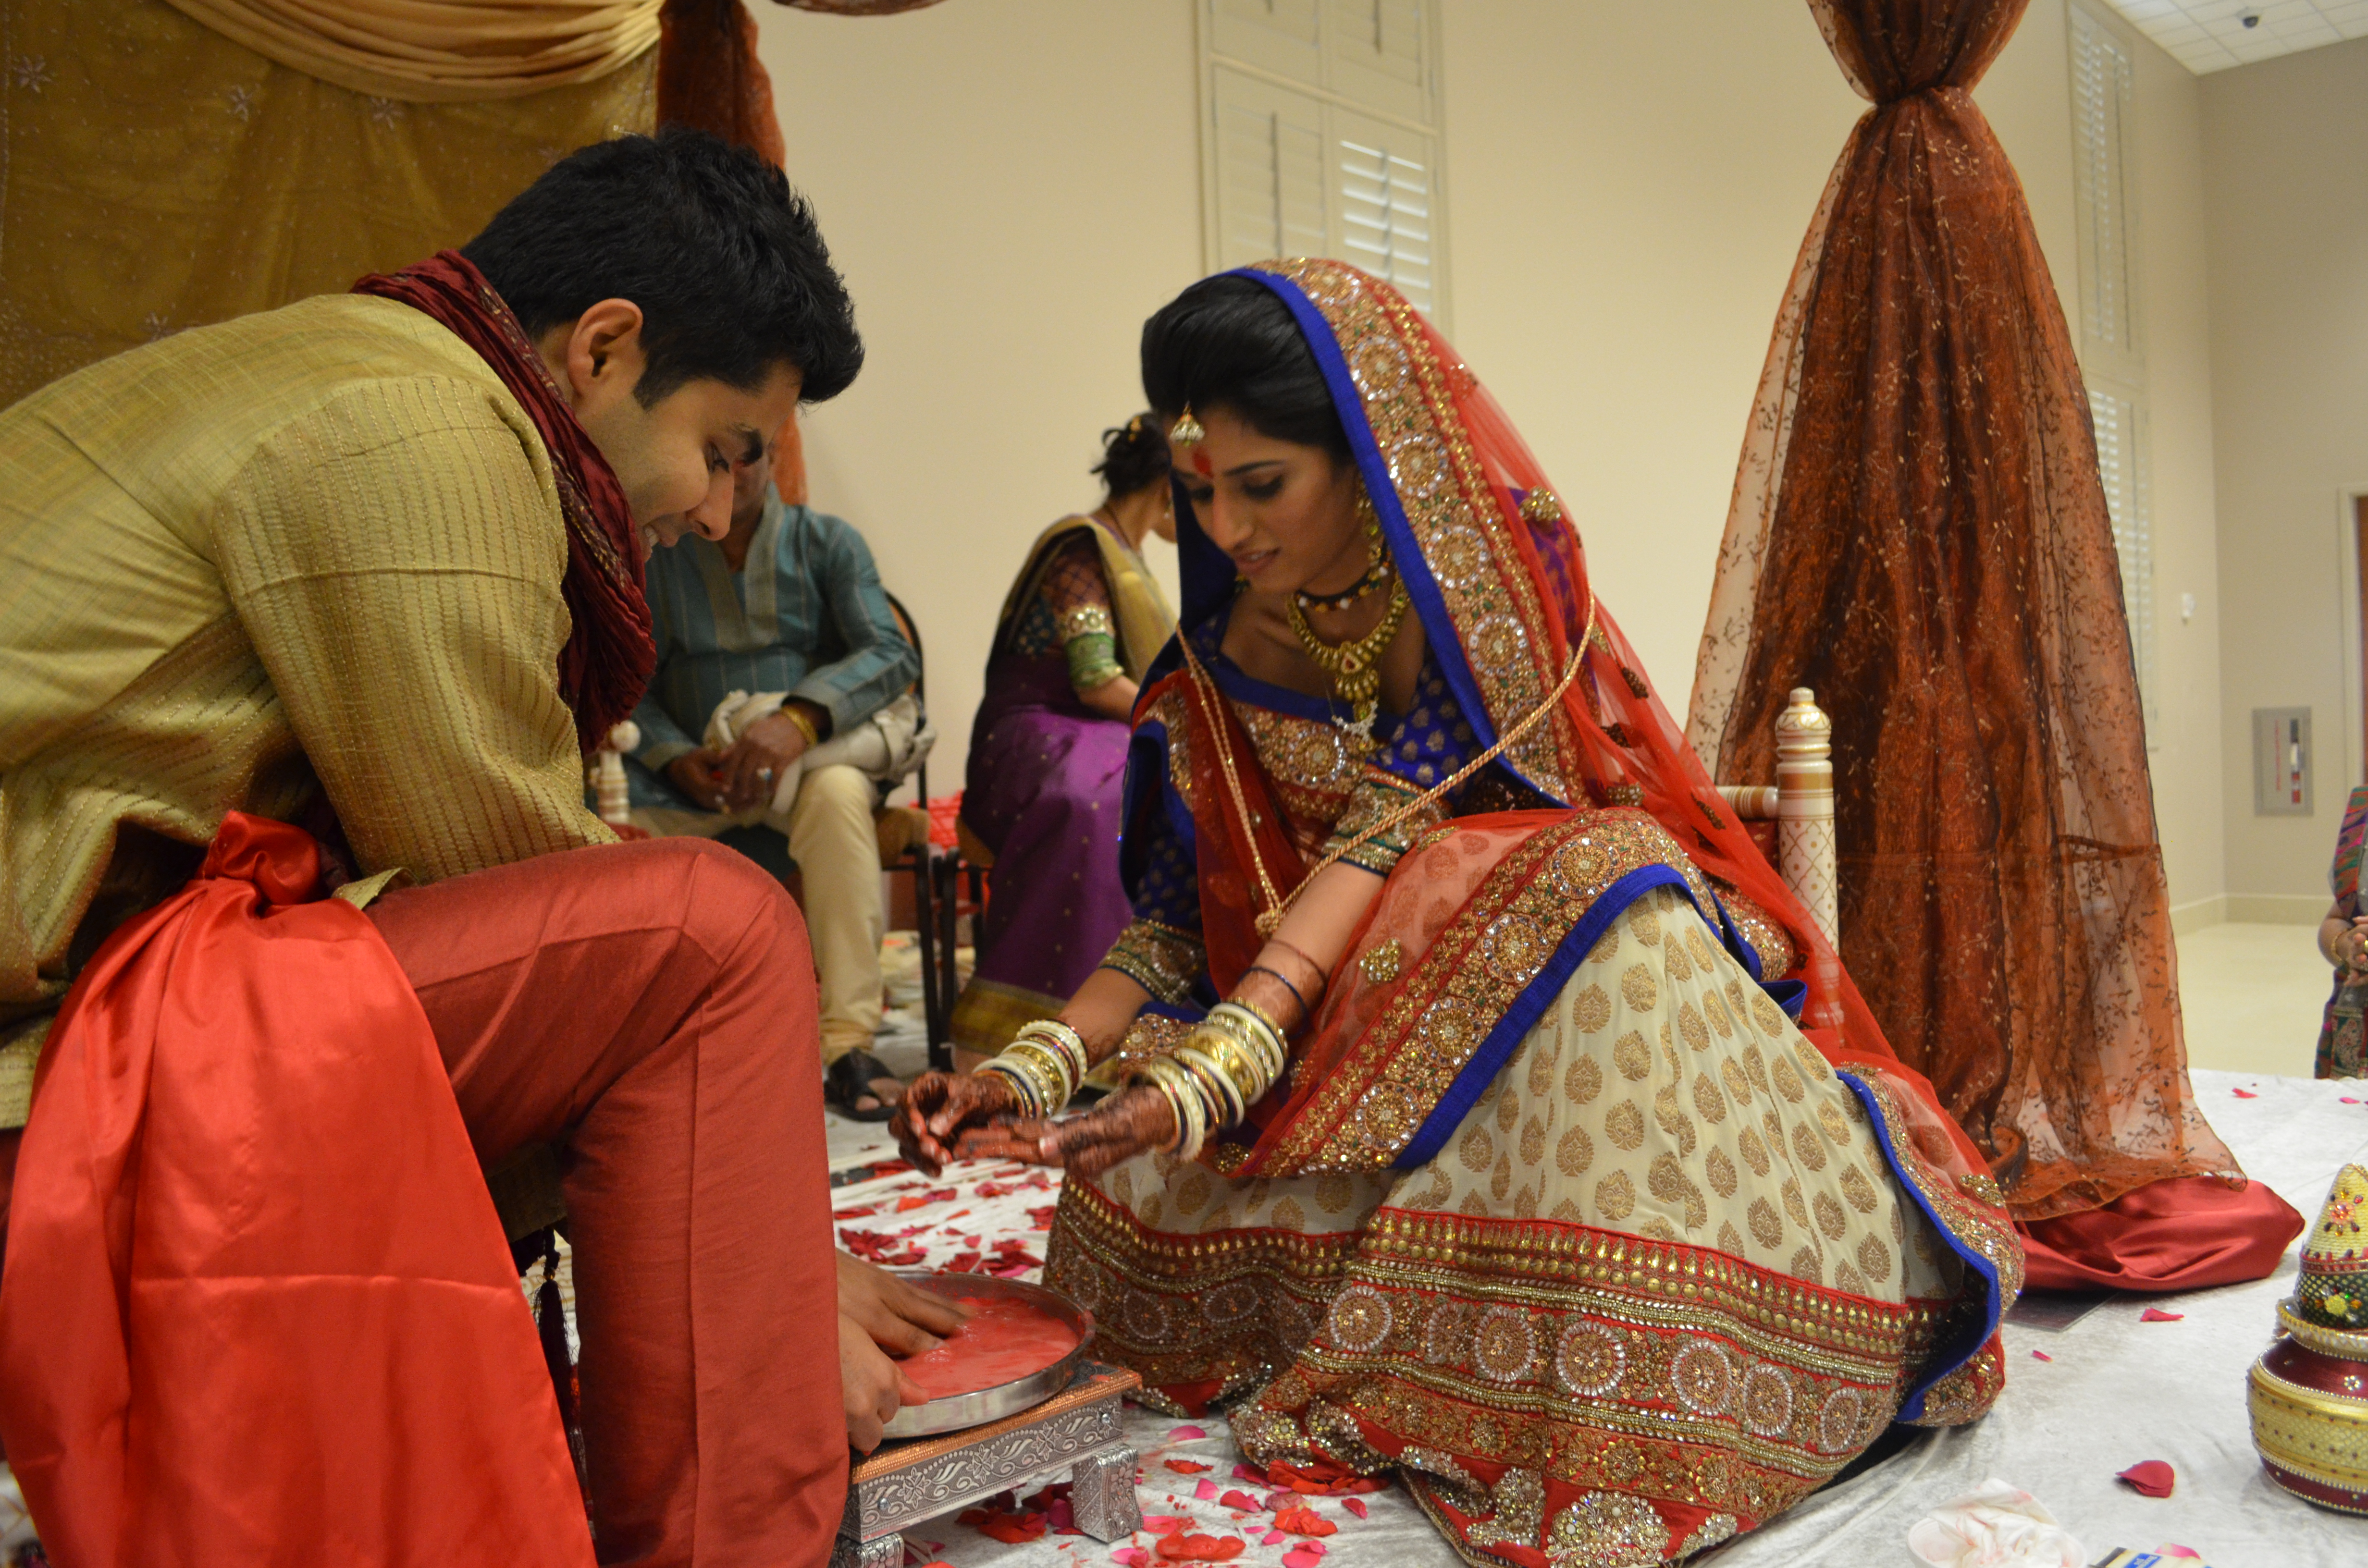 In The Hindu Tradition There Are Some Fun Games That Played After Wedding Whoever Wins Dominates Marriage